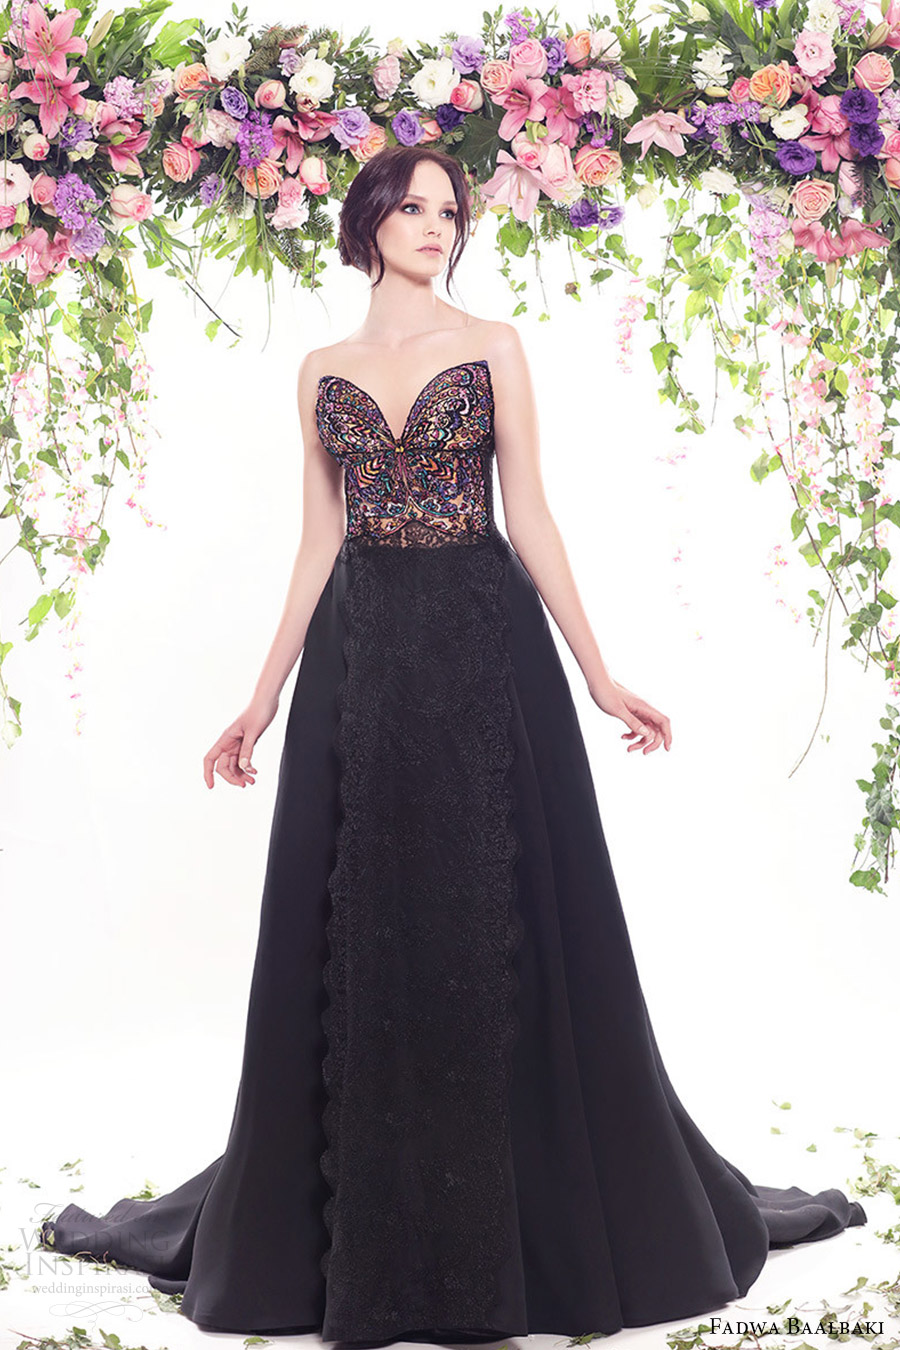 fadwa baalbaki spring 2016 couture strapless sweetheart black ball gown multi color bodice mv